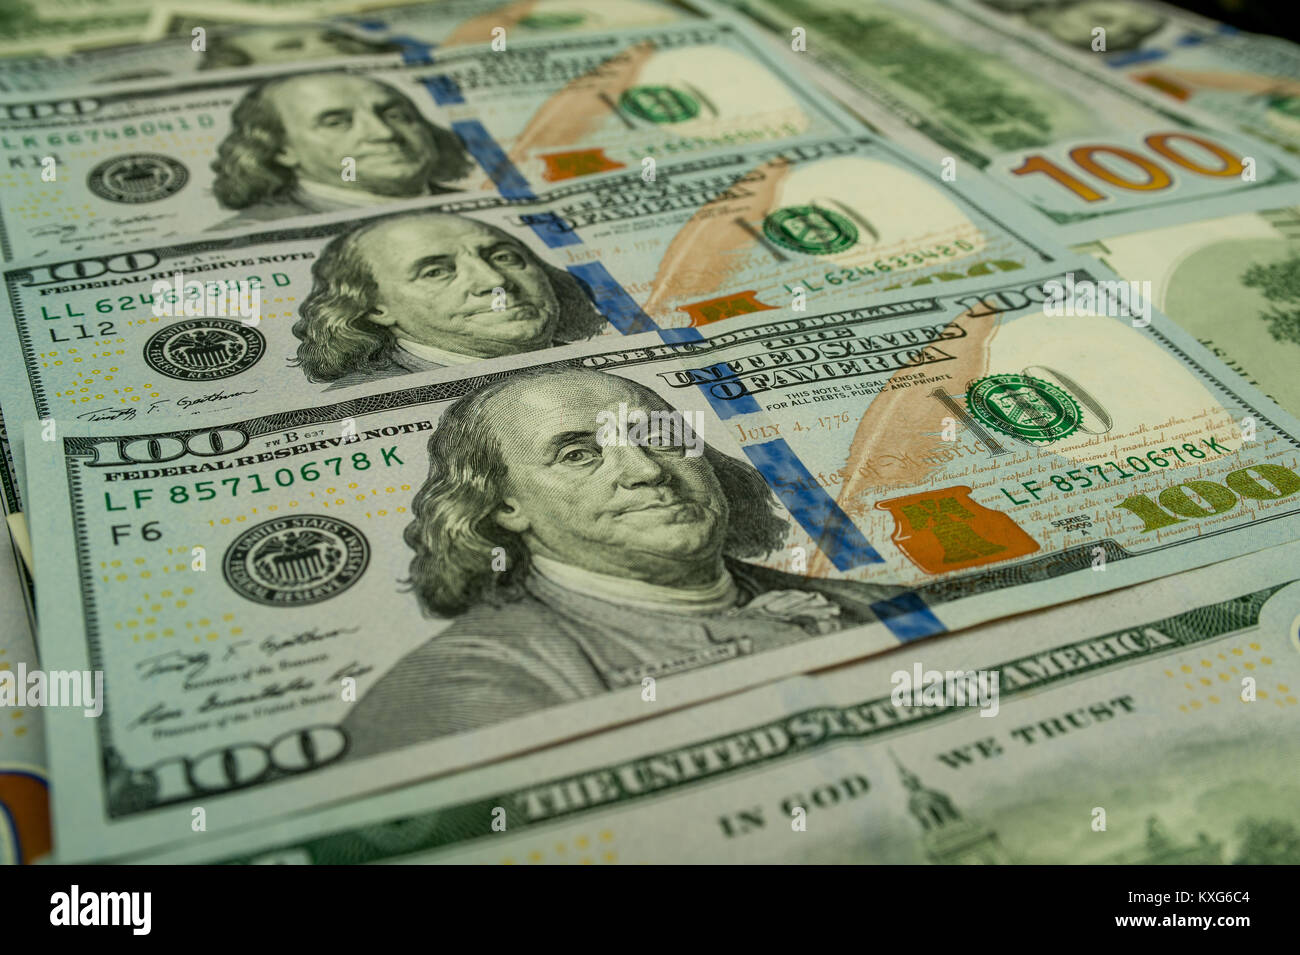 Ruble Usd Stock Photos & Ruble Usd Stock Images - Alamy